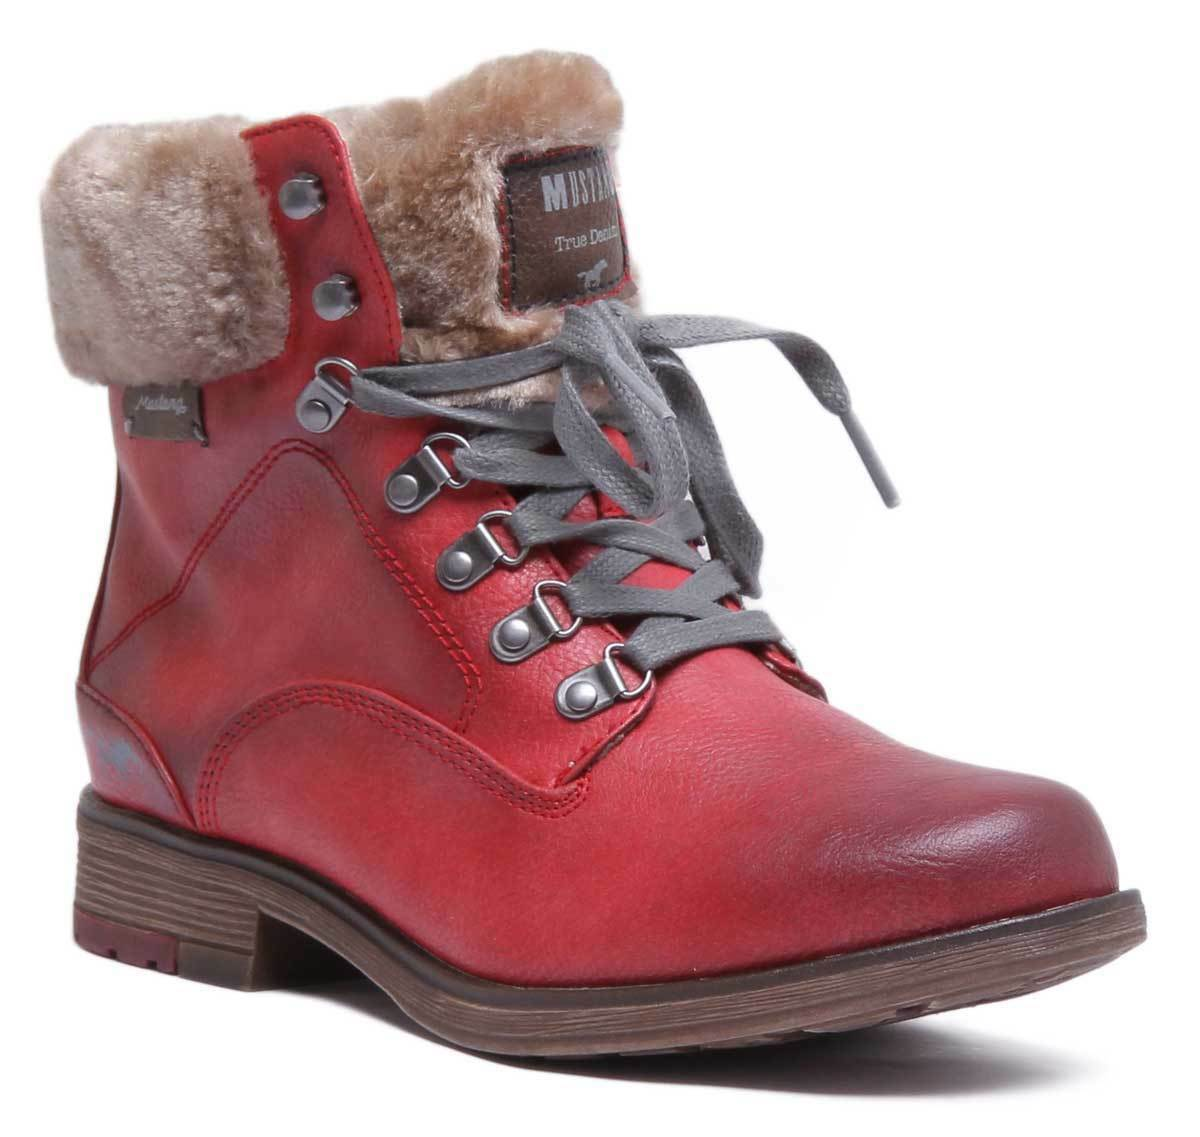 Mustang 1295 601 femmes rouge Synthetic Ankle bottes Taille UK 3 - 8